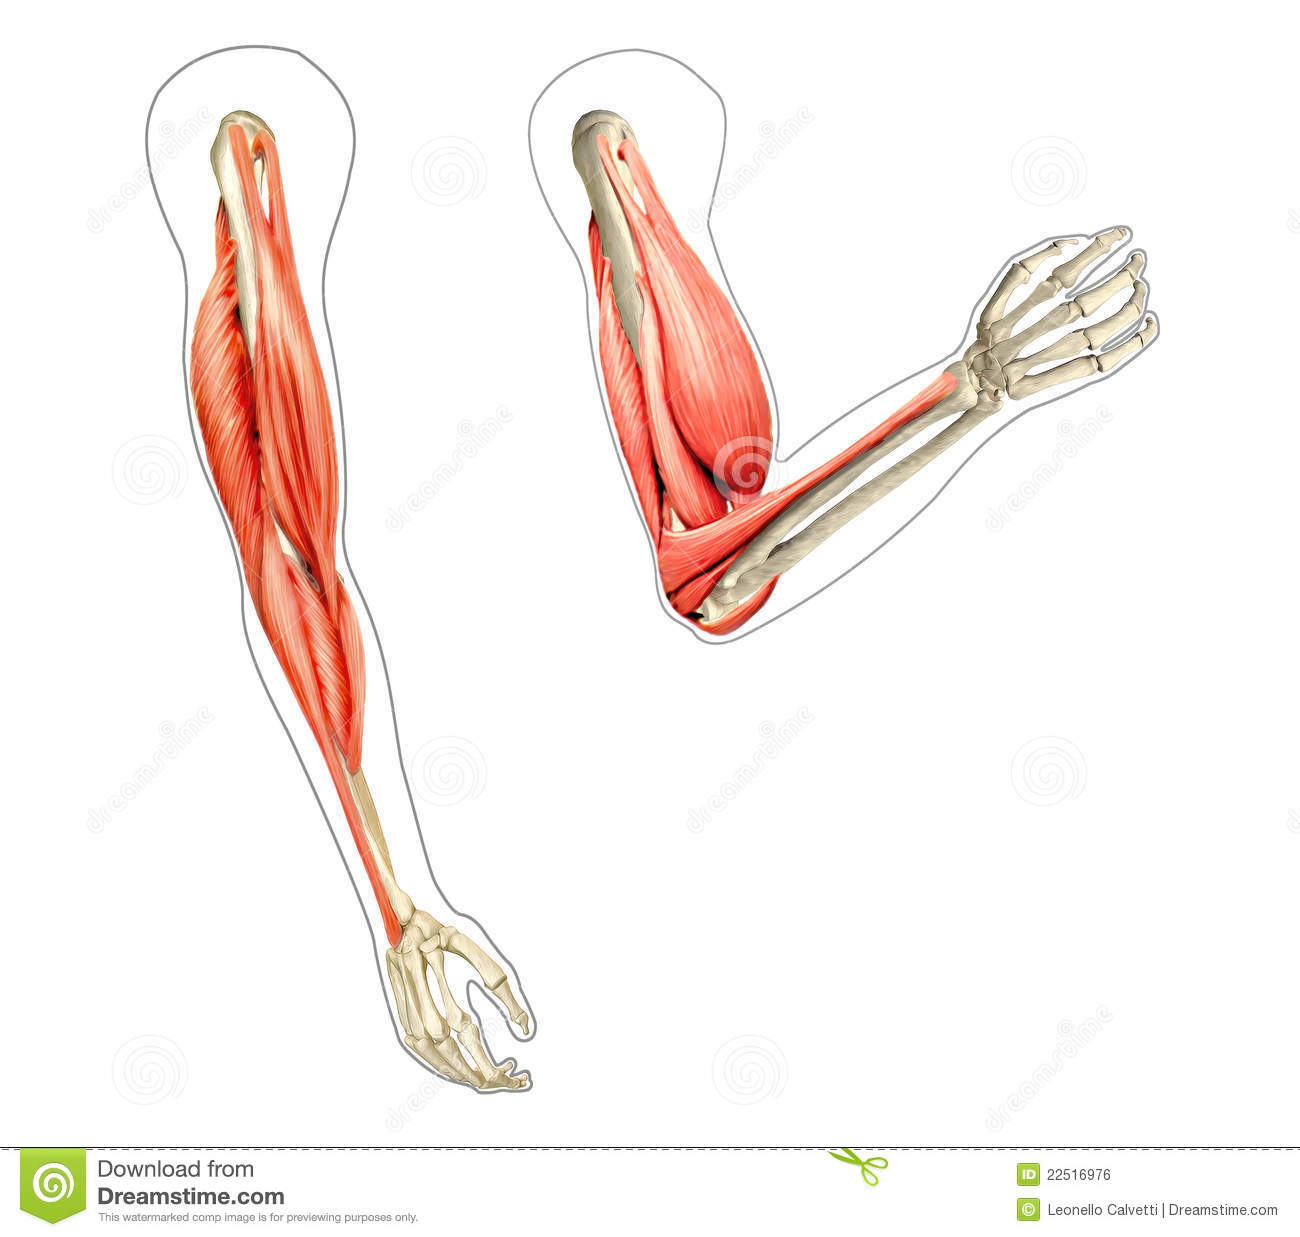 Body Regions Diagram Blank In Color Experience Of Wiring Full Muscle Anatomy Muscles Labeled Anatomical Arm Blogs Rh 9 5 Restaurant Freinsheimer Hof De Abdominal Quadrant